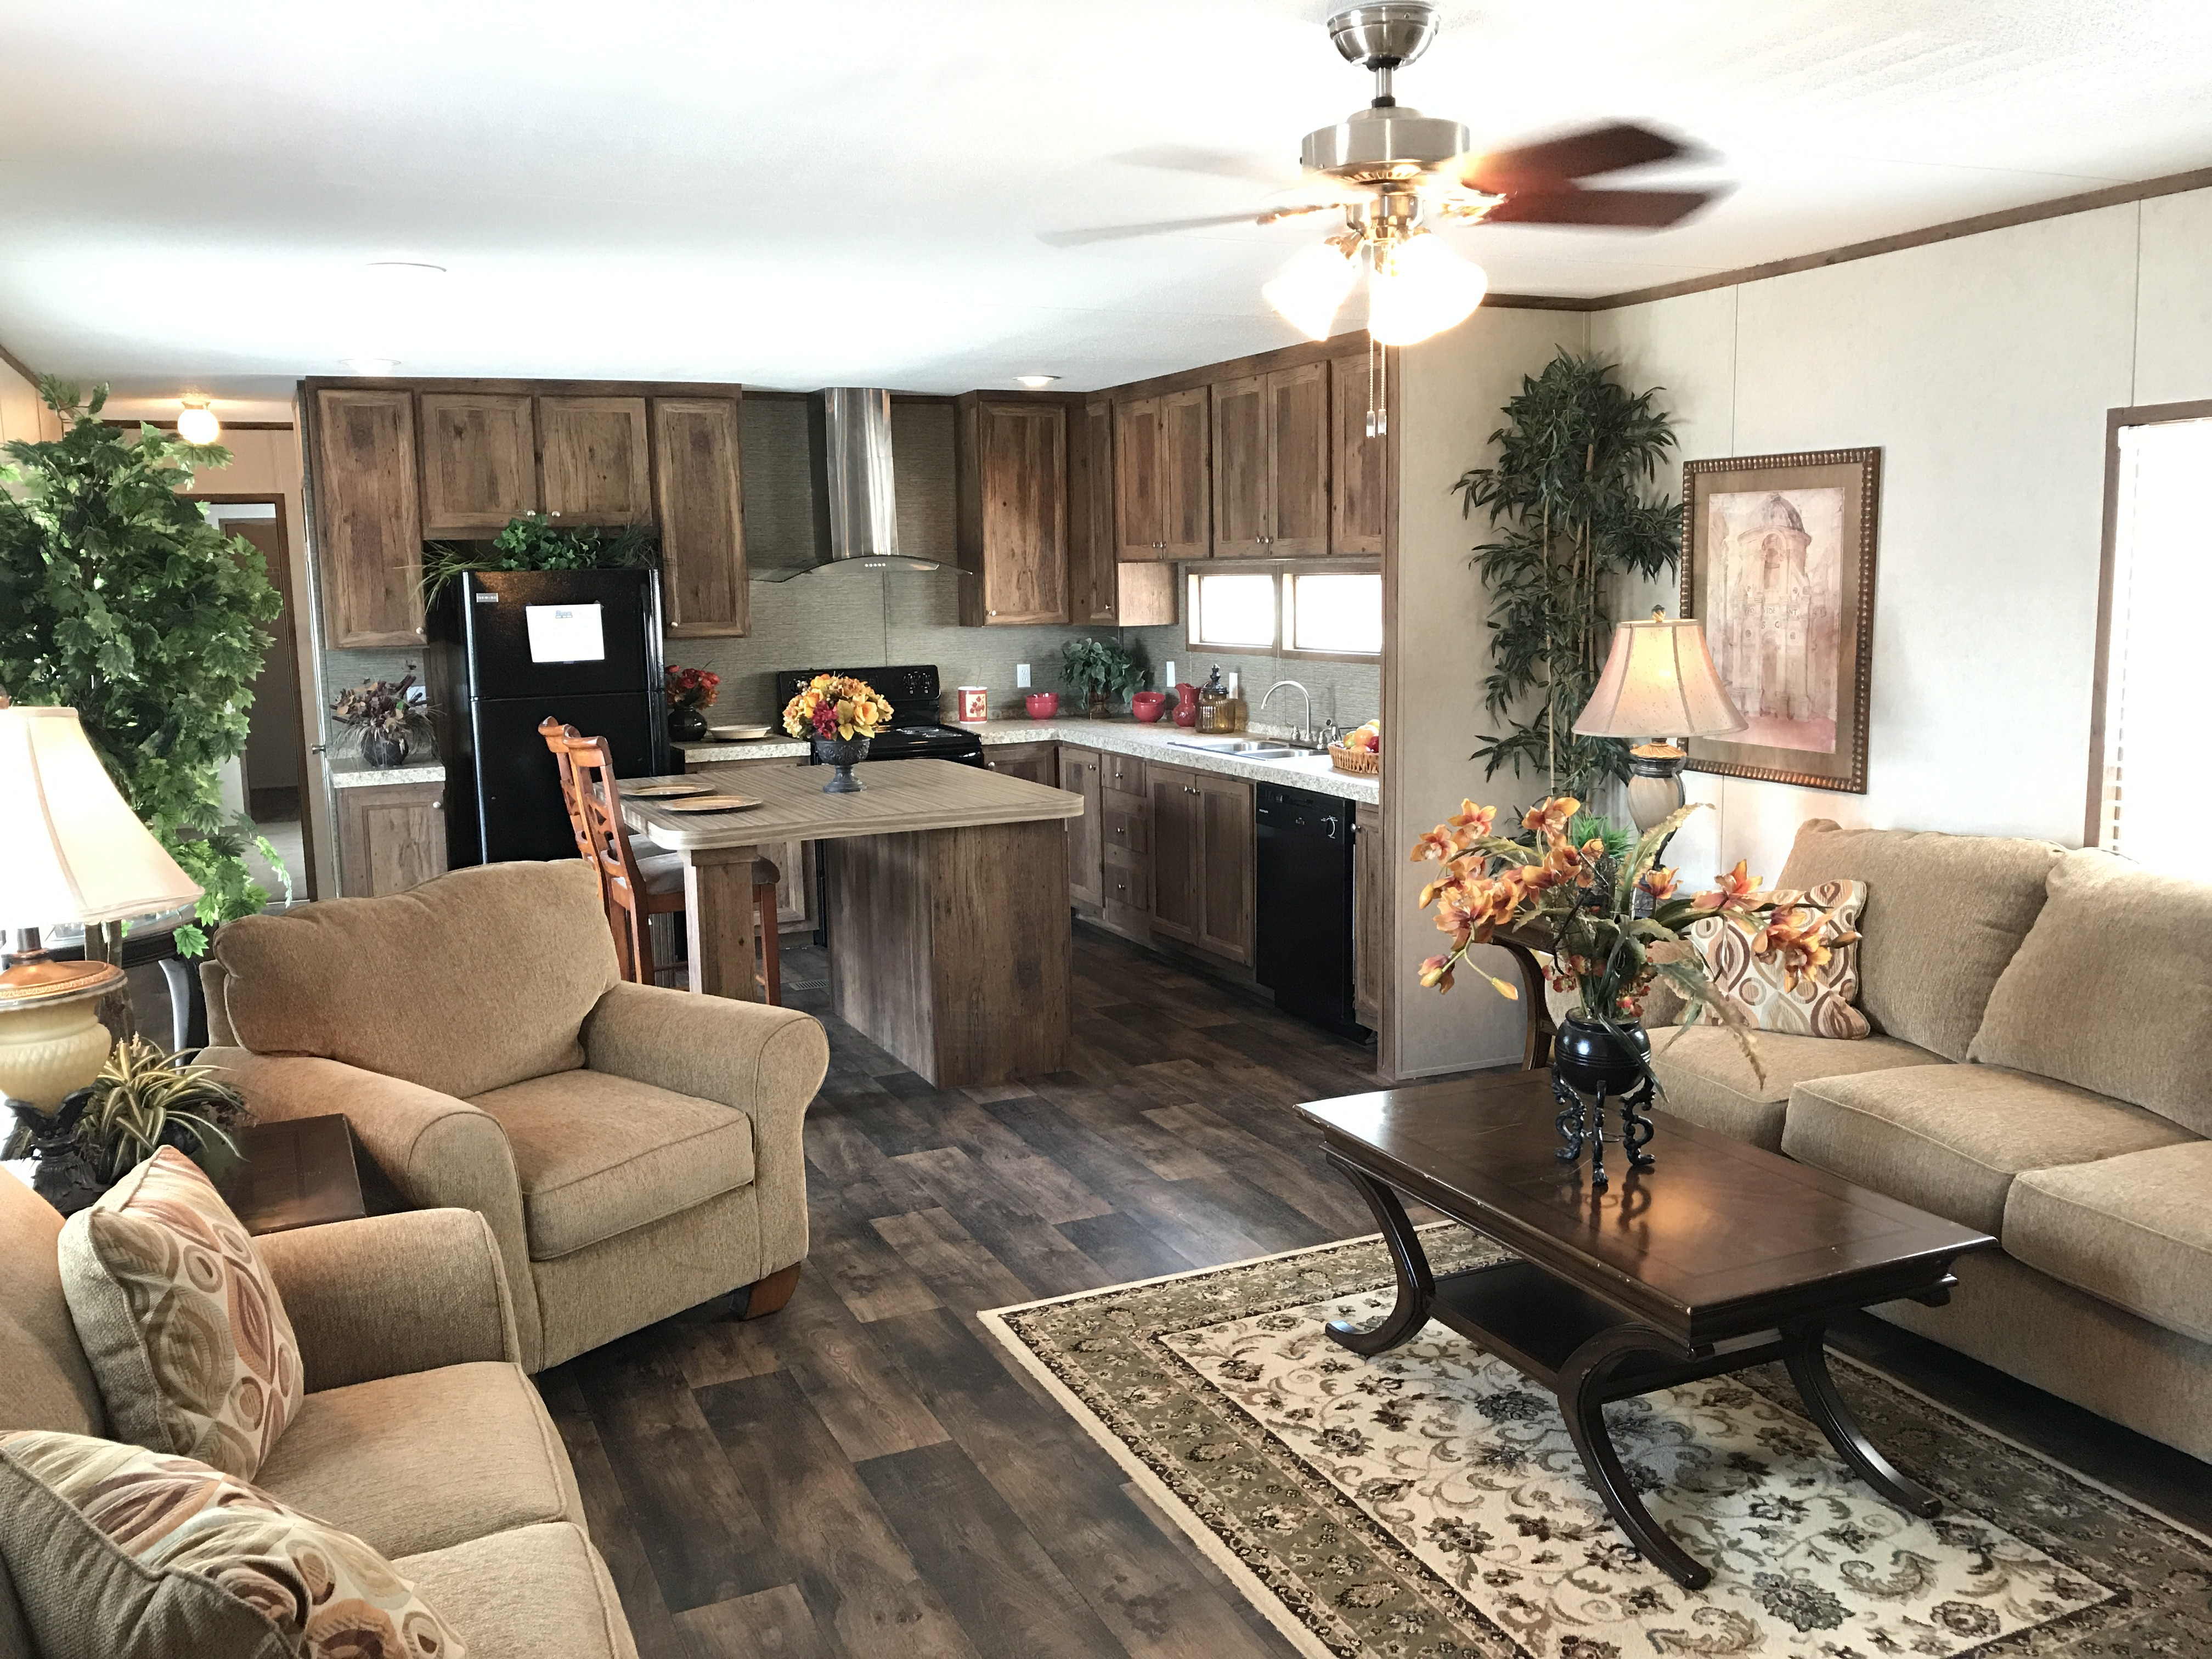 Nicole franzen having a small space may burden you with more storage issues than your nei. Single-Wide Mobile Homes: Shreveport, LA   Greg Tilley's